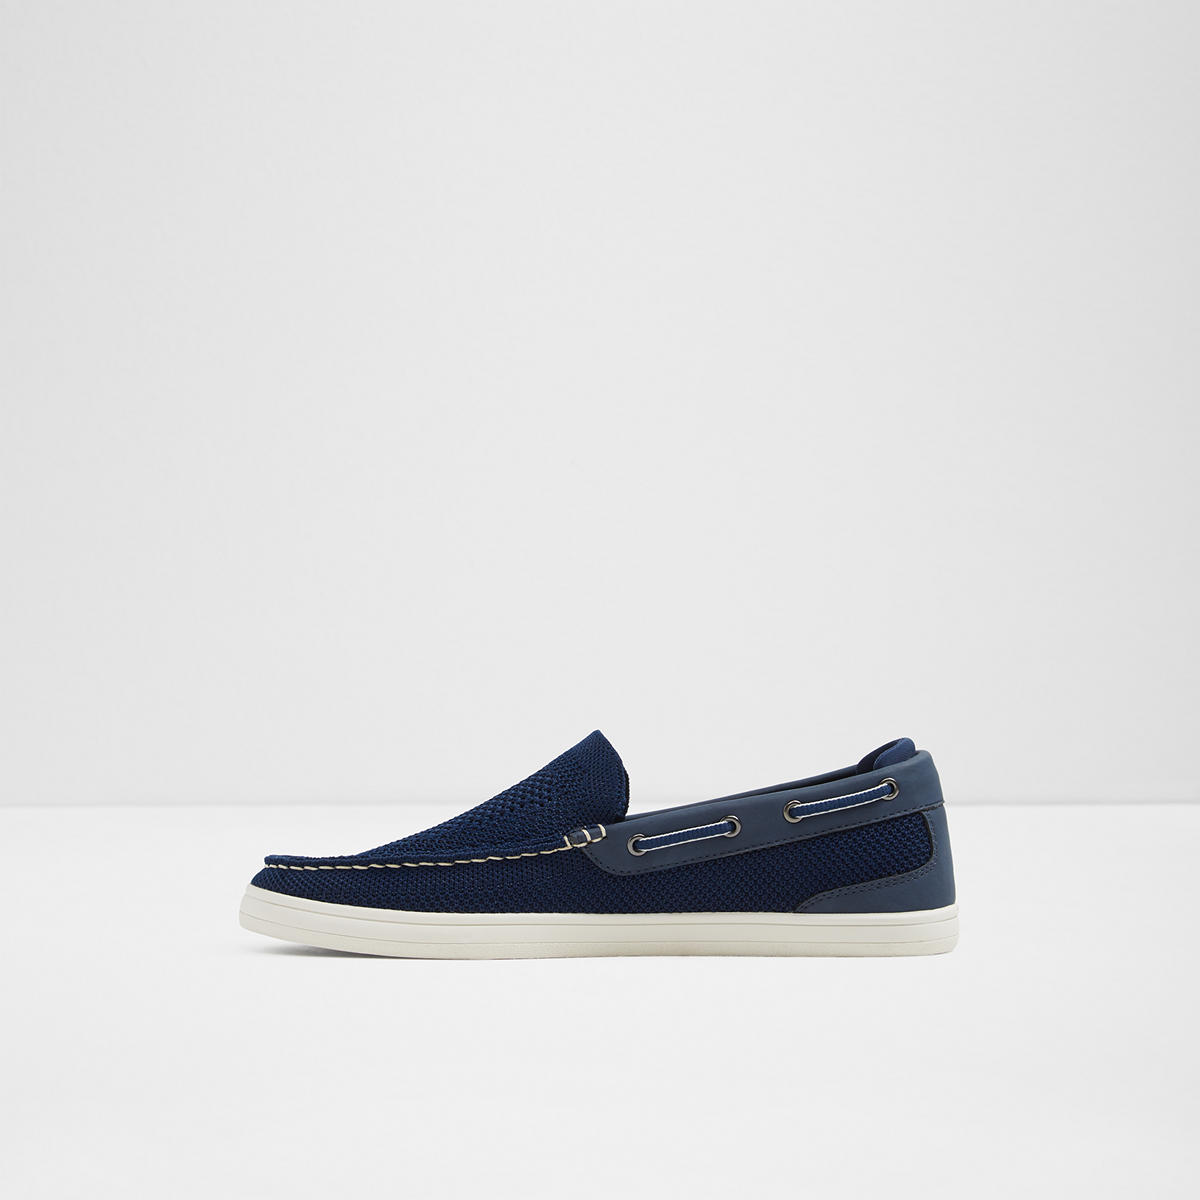 Mens Gralewet Boating Shoes Aldo eIsycqY